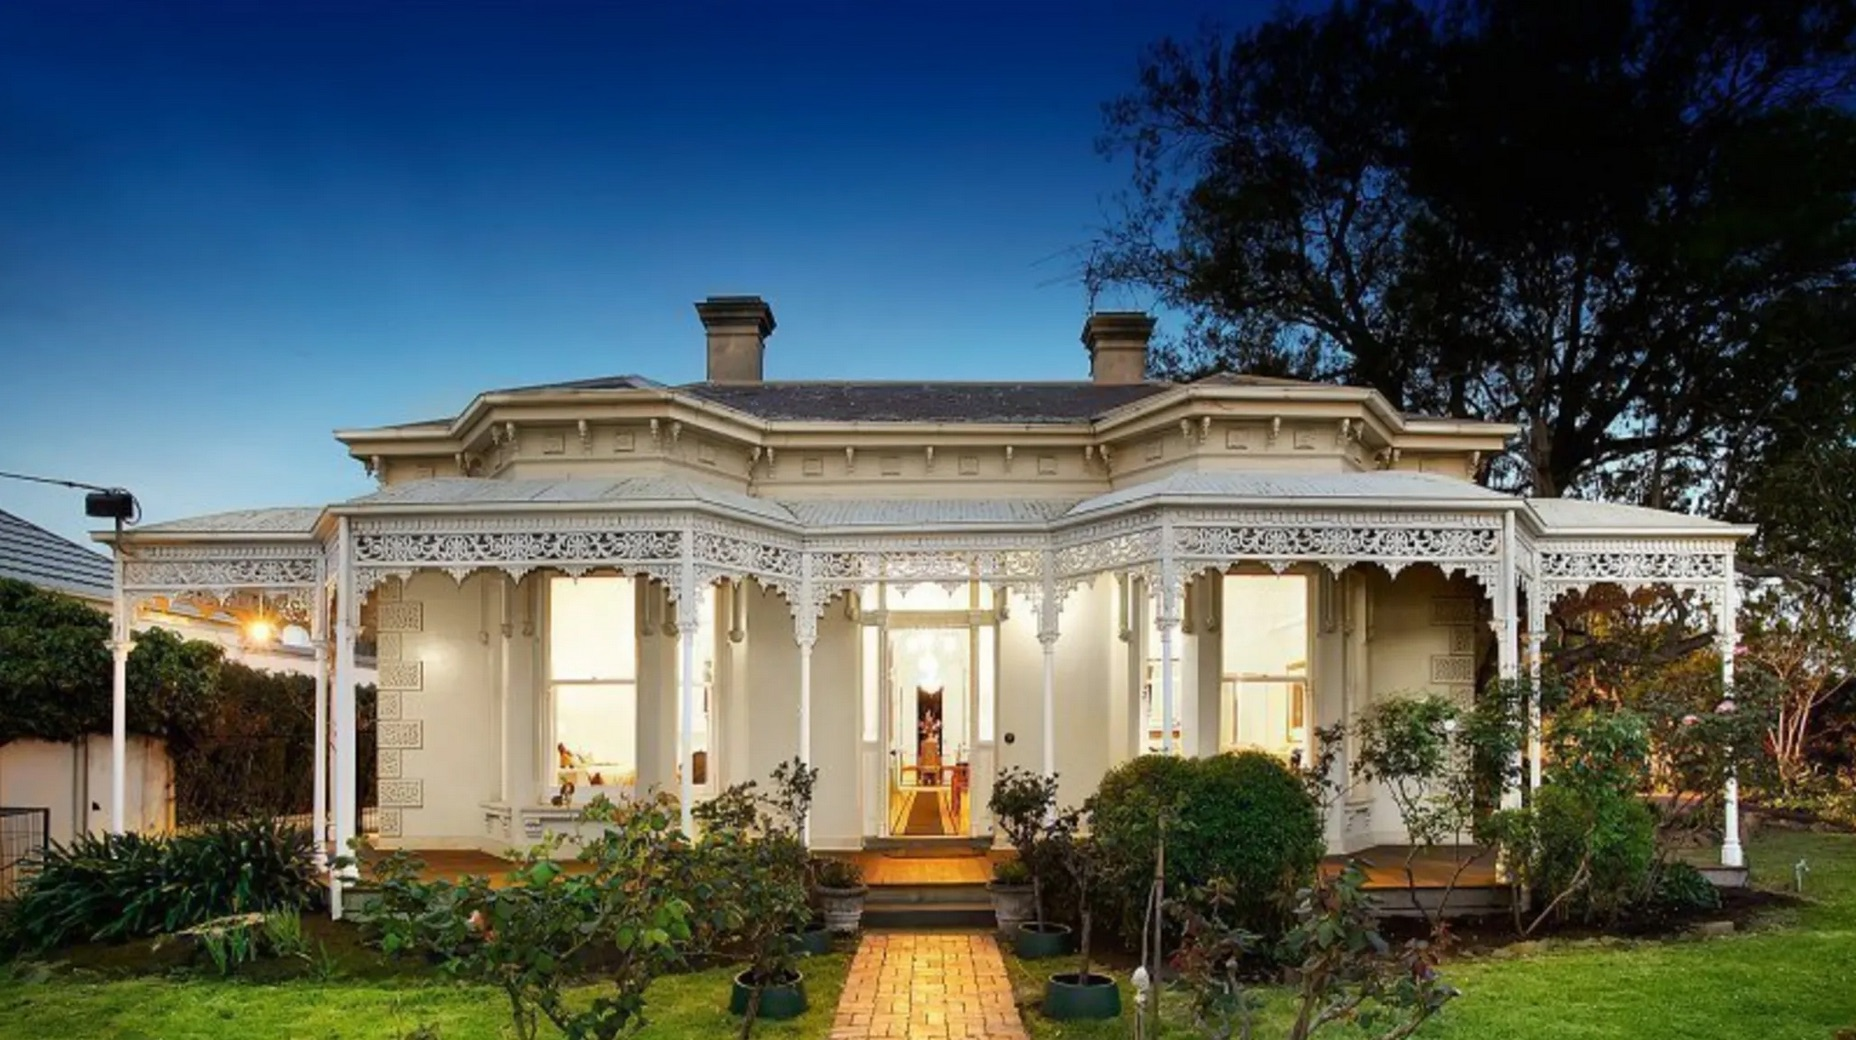 Currajong House in Hawthorn was saved from demolition by Planning Minister Richard Wynne in May